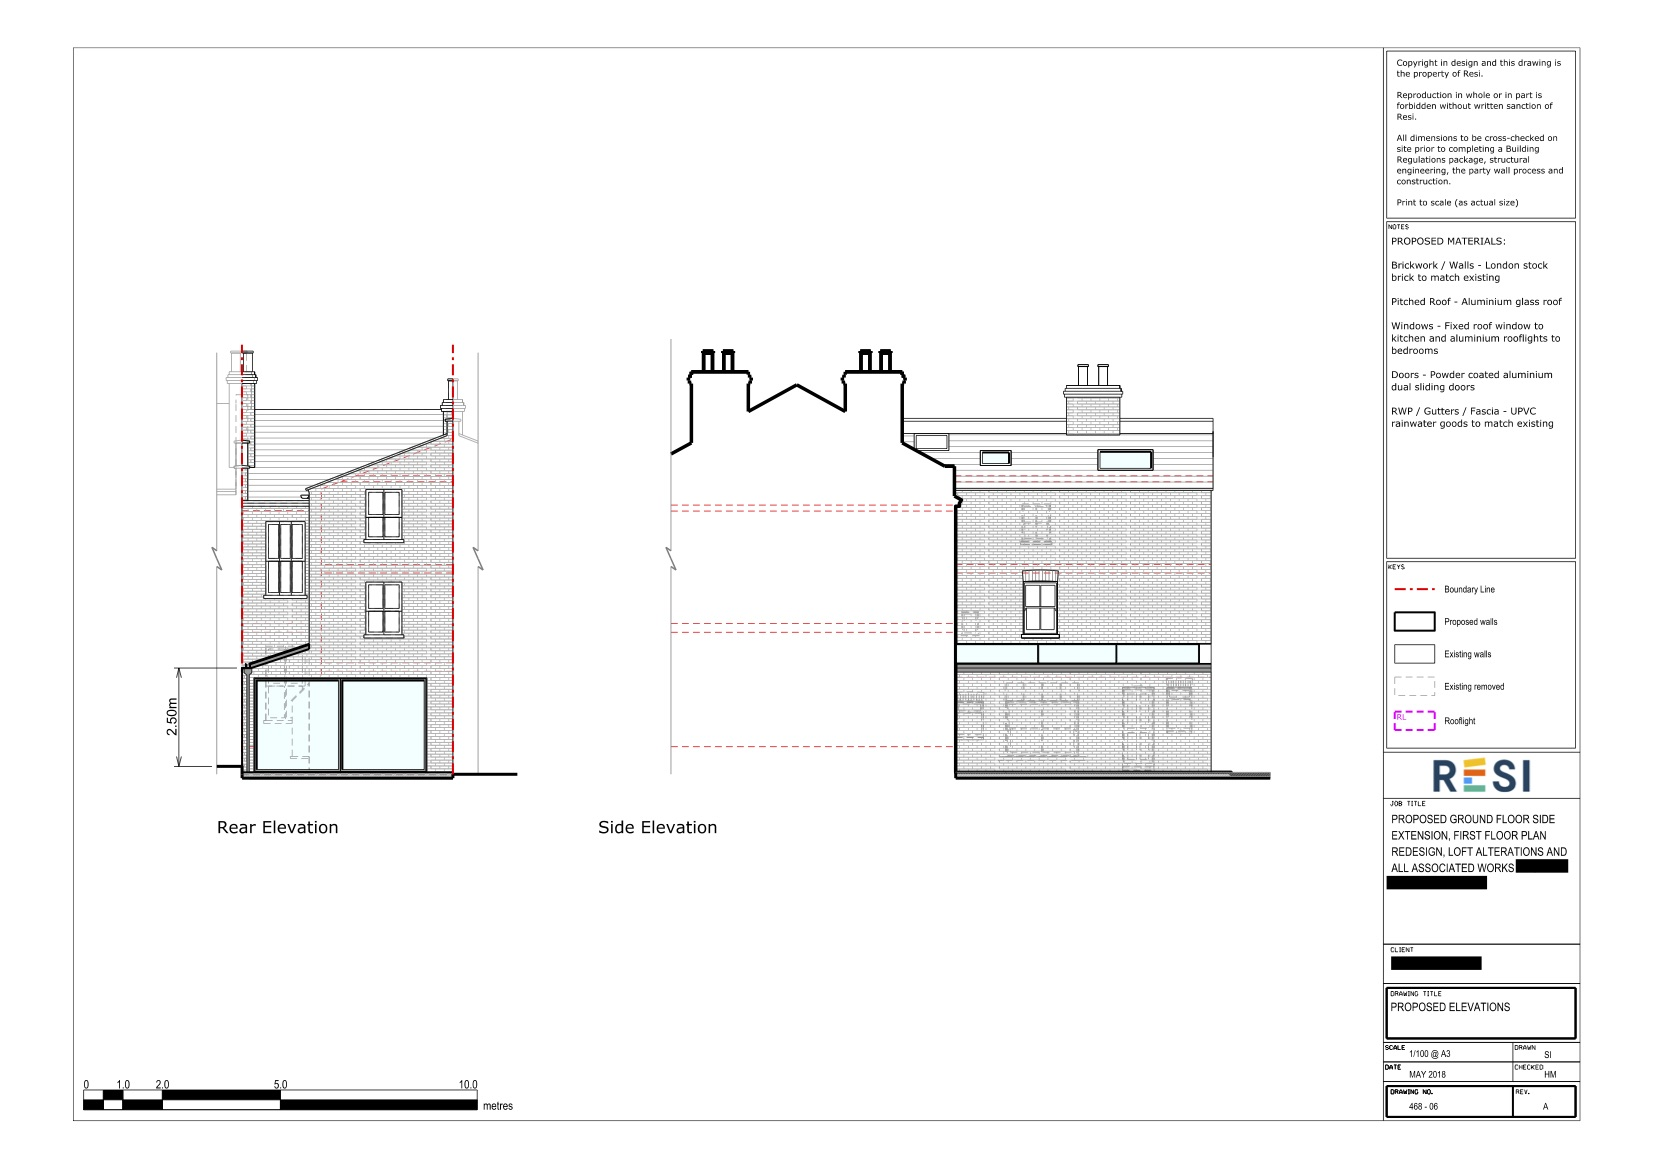 Architectural drawings rev a  elevations